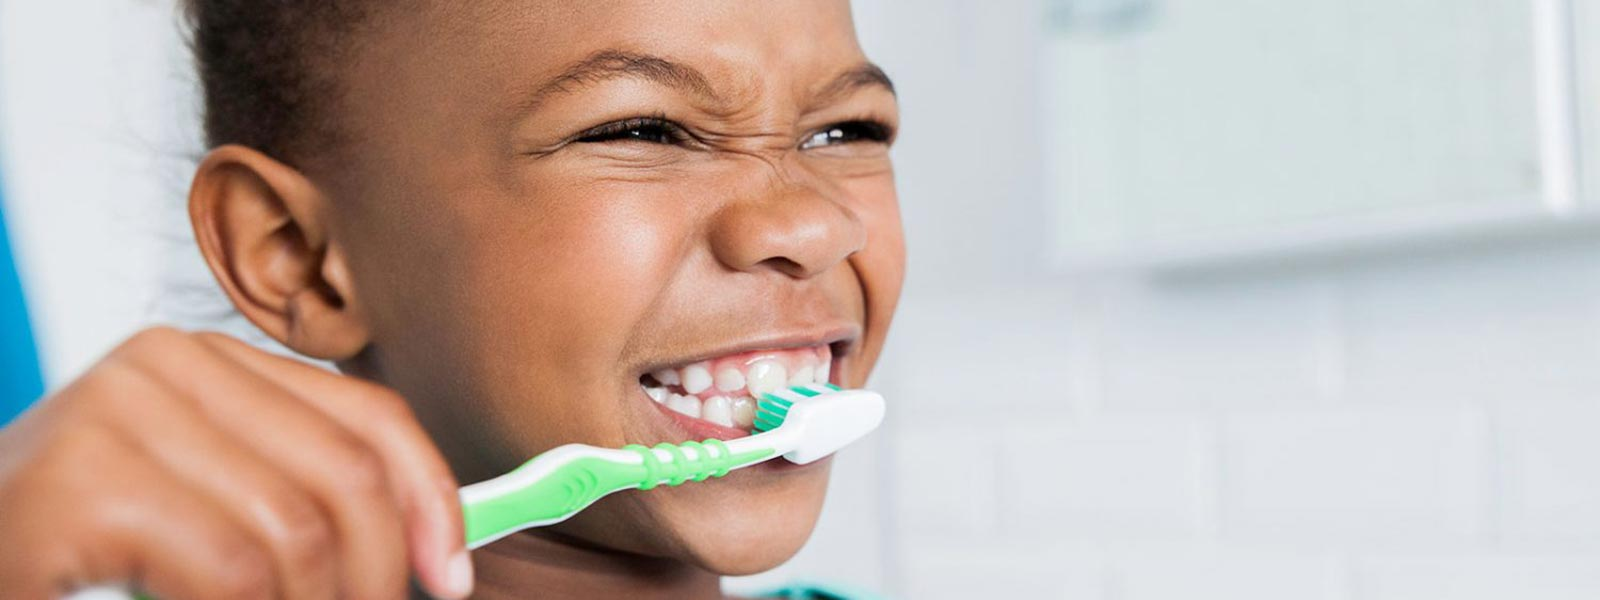 Child brushes teeth before dental clinic